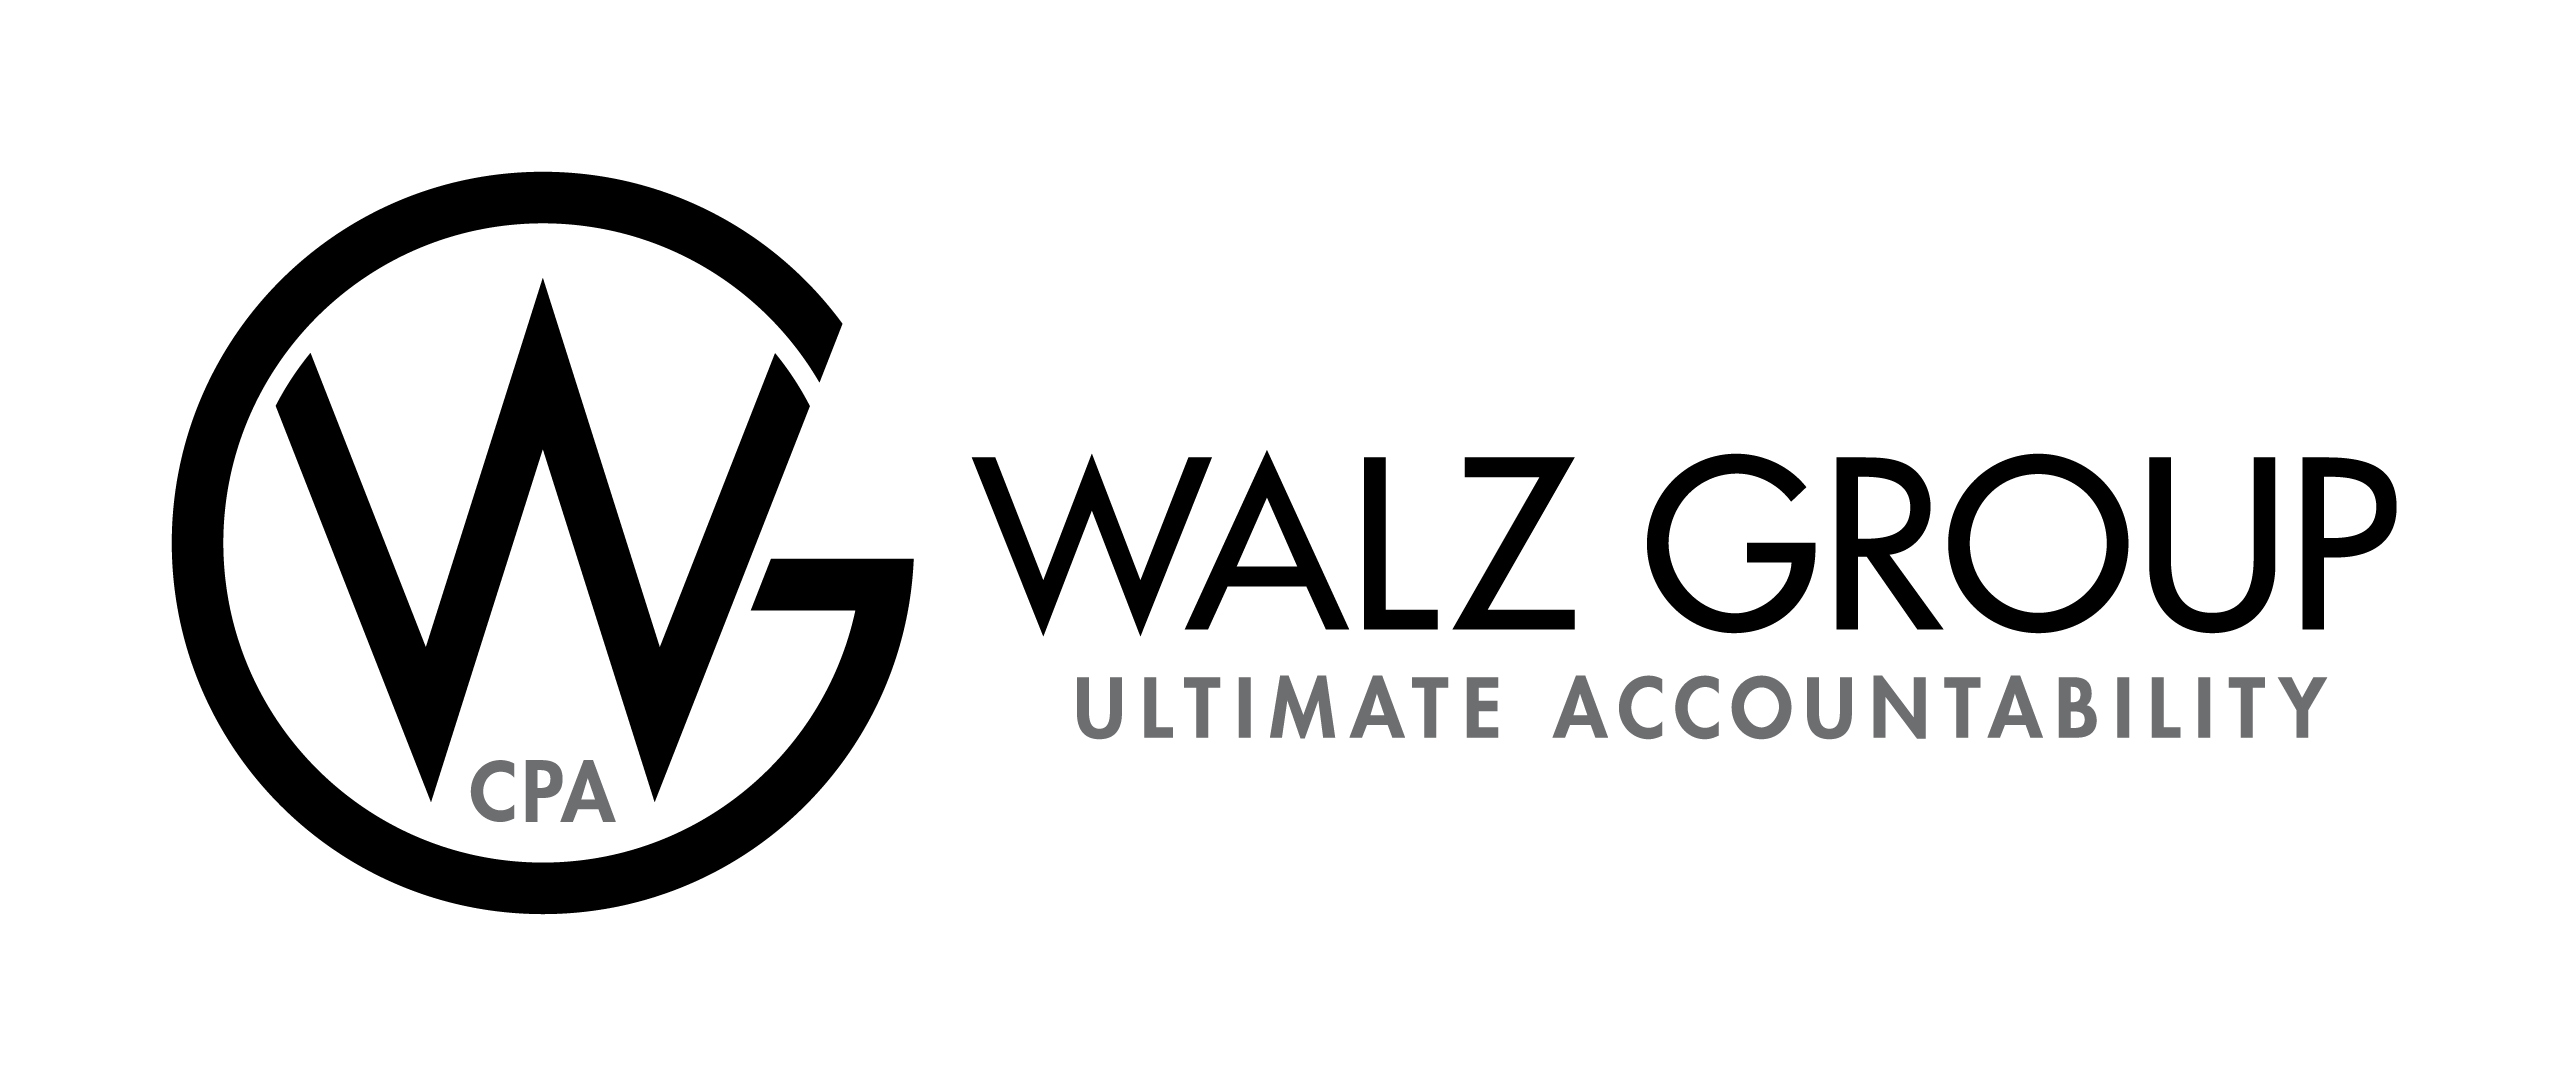 walzlogos_walz_blk_all_h